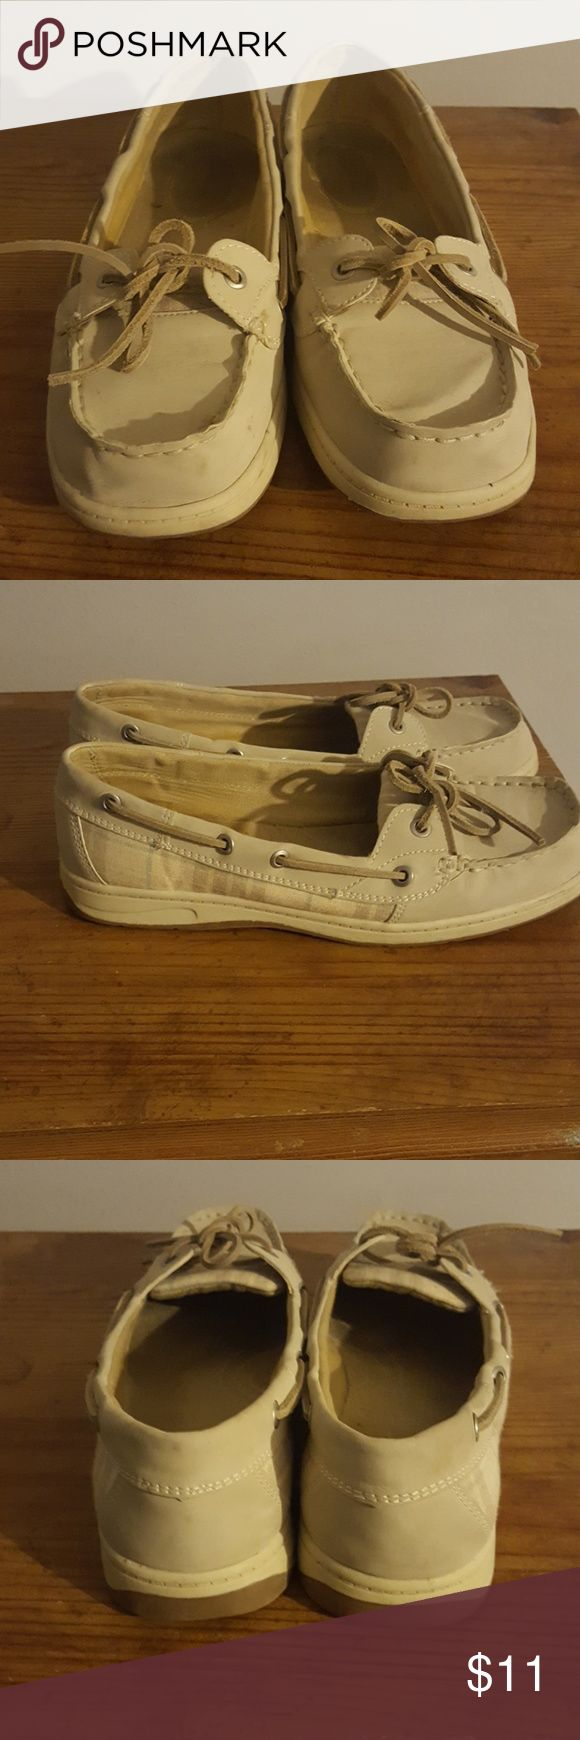 Amazon.com: Sperry Top-Sider: Stores